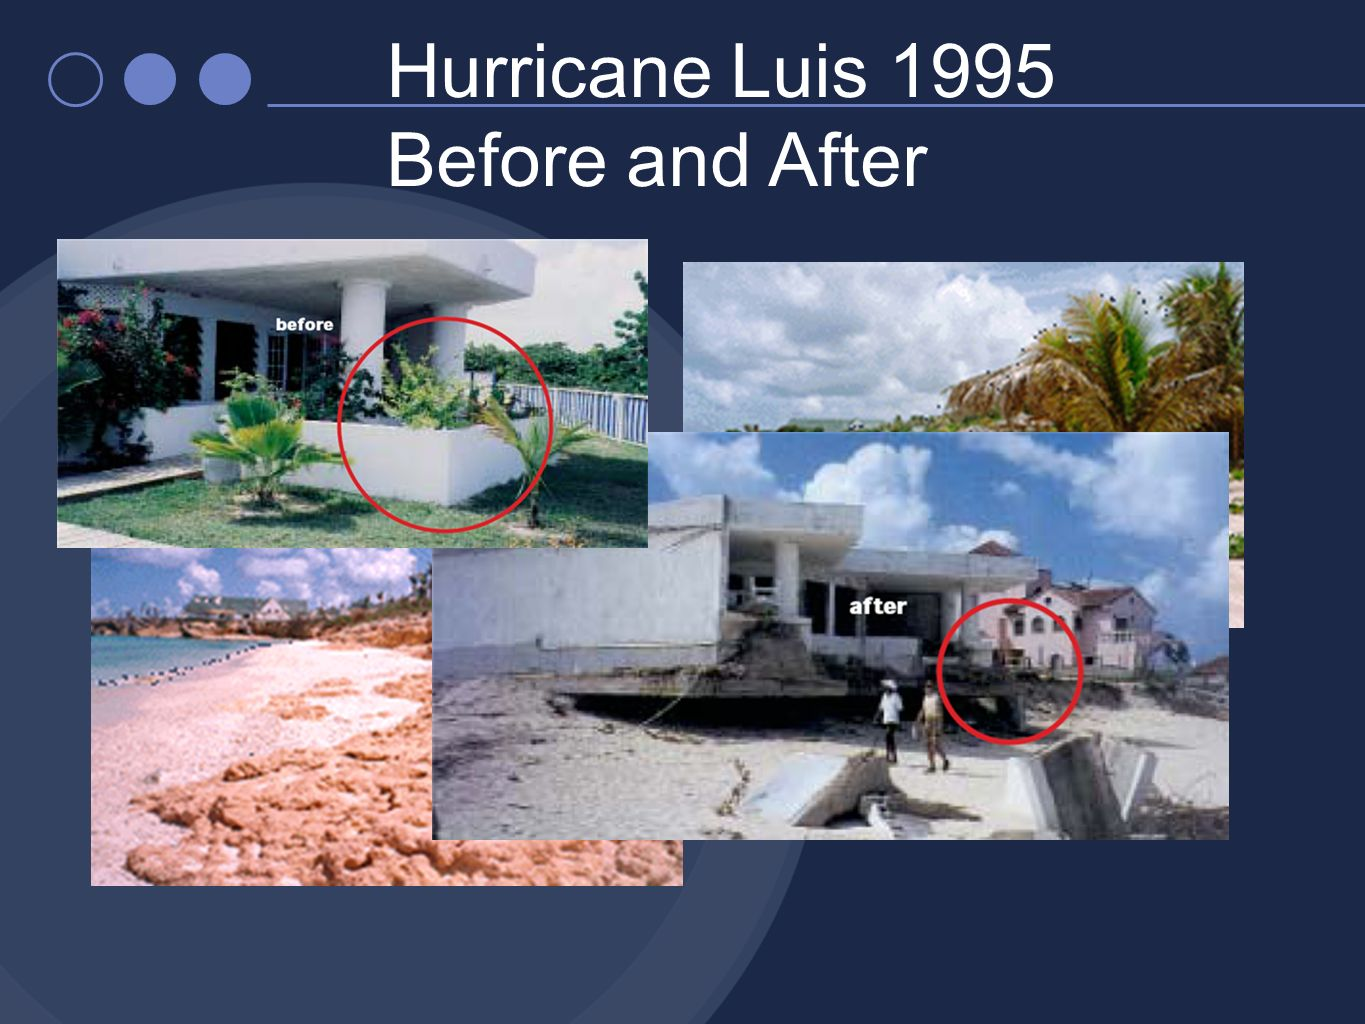 Hurricane Luis 1995 Before and After Source: UNESCO CSI